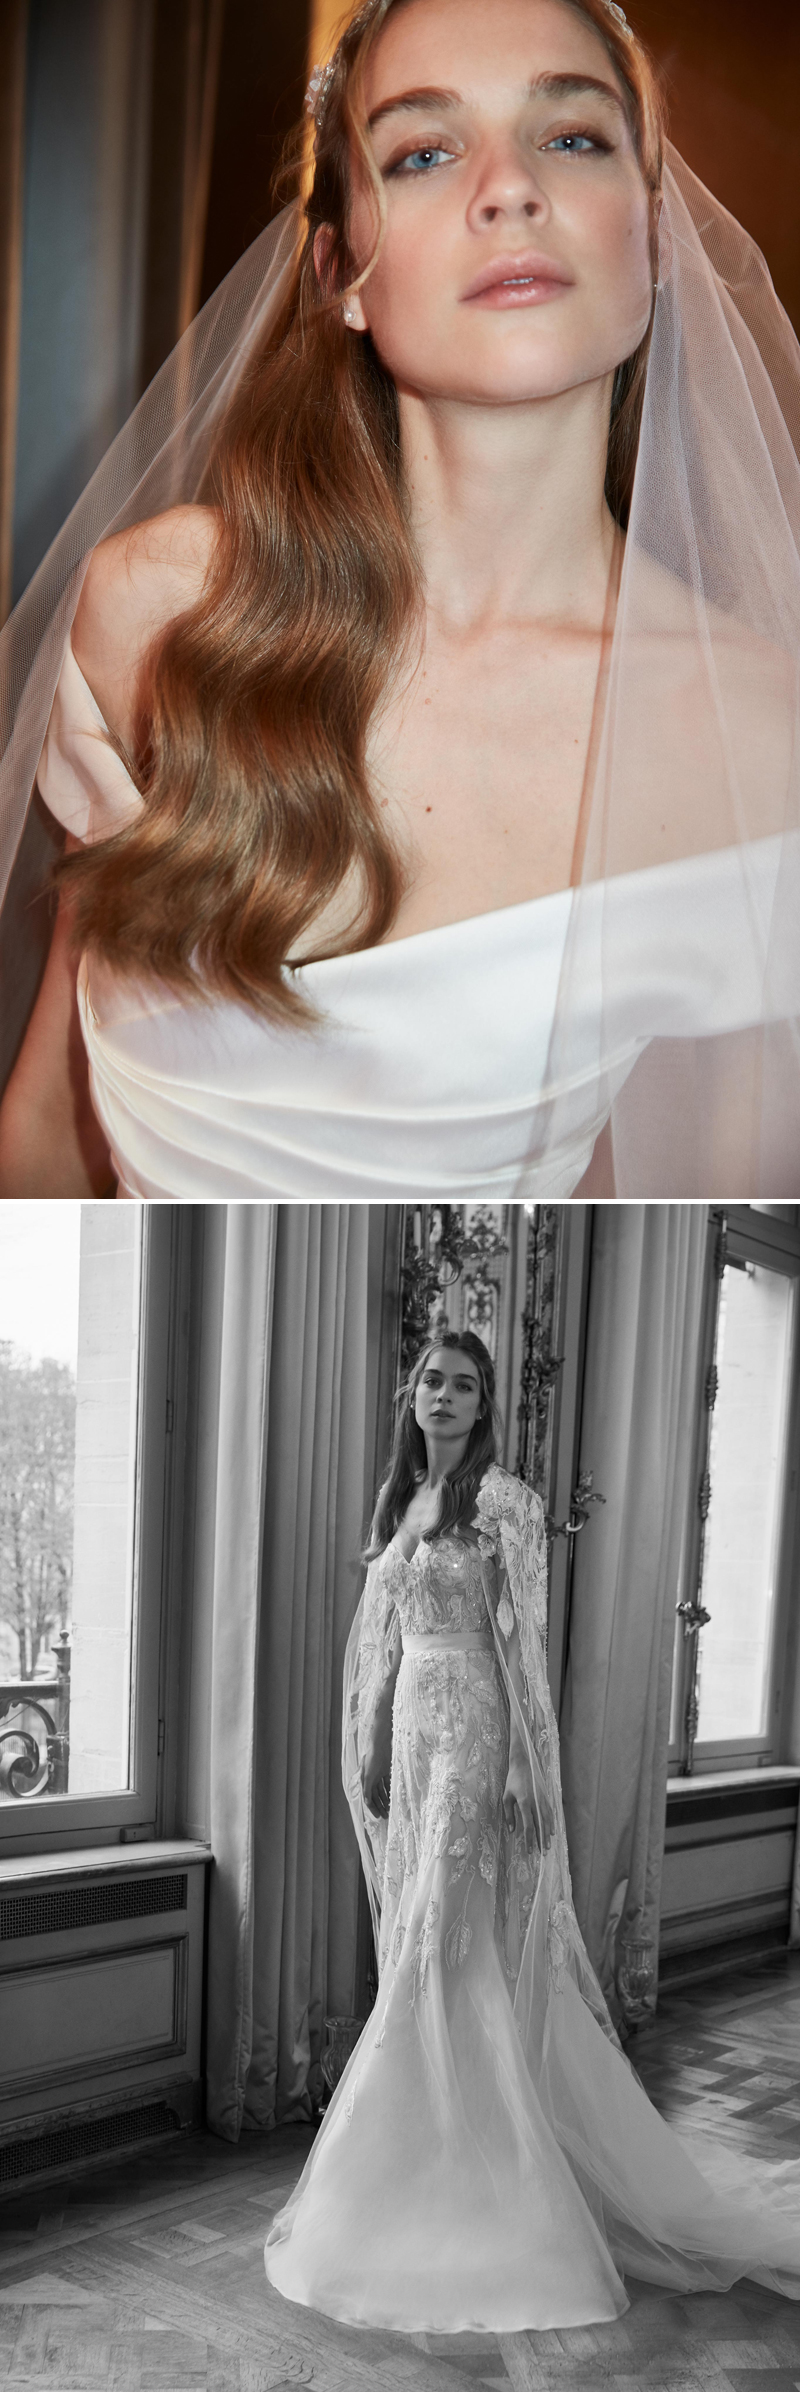 Bal de Vienne, Elie Saab, Elie Saab Bridal, Elie Saab Spring 2019 Bridal Collection, Elie Saab Bal de Vienne, Elie Saab Bride, Elie Saab Wedding Dresses, Perfect Wedding Magazine, Spring 2019 Bridal Trends